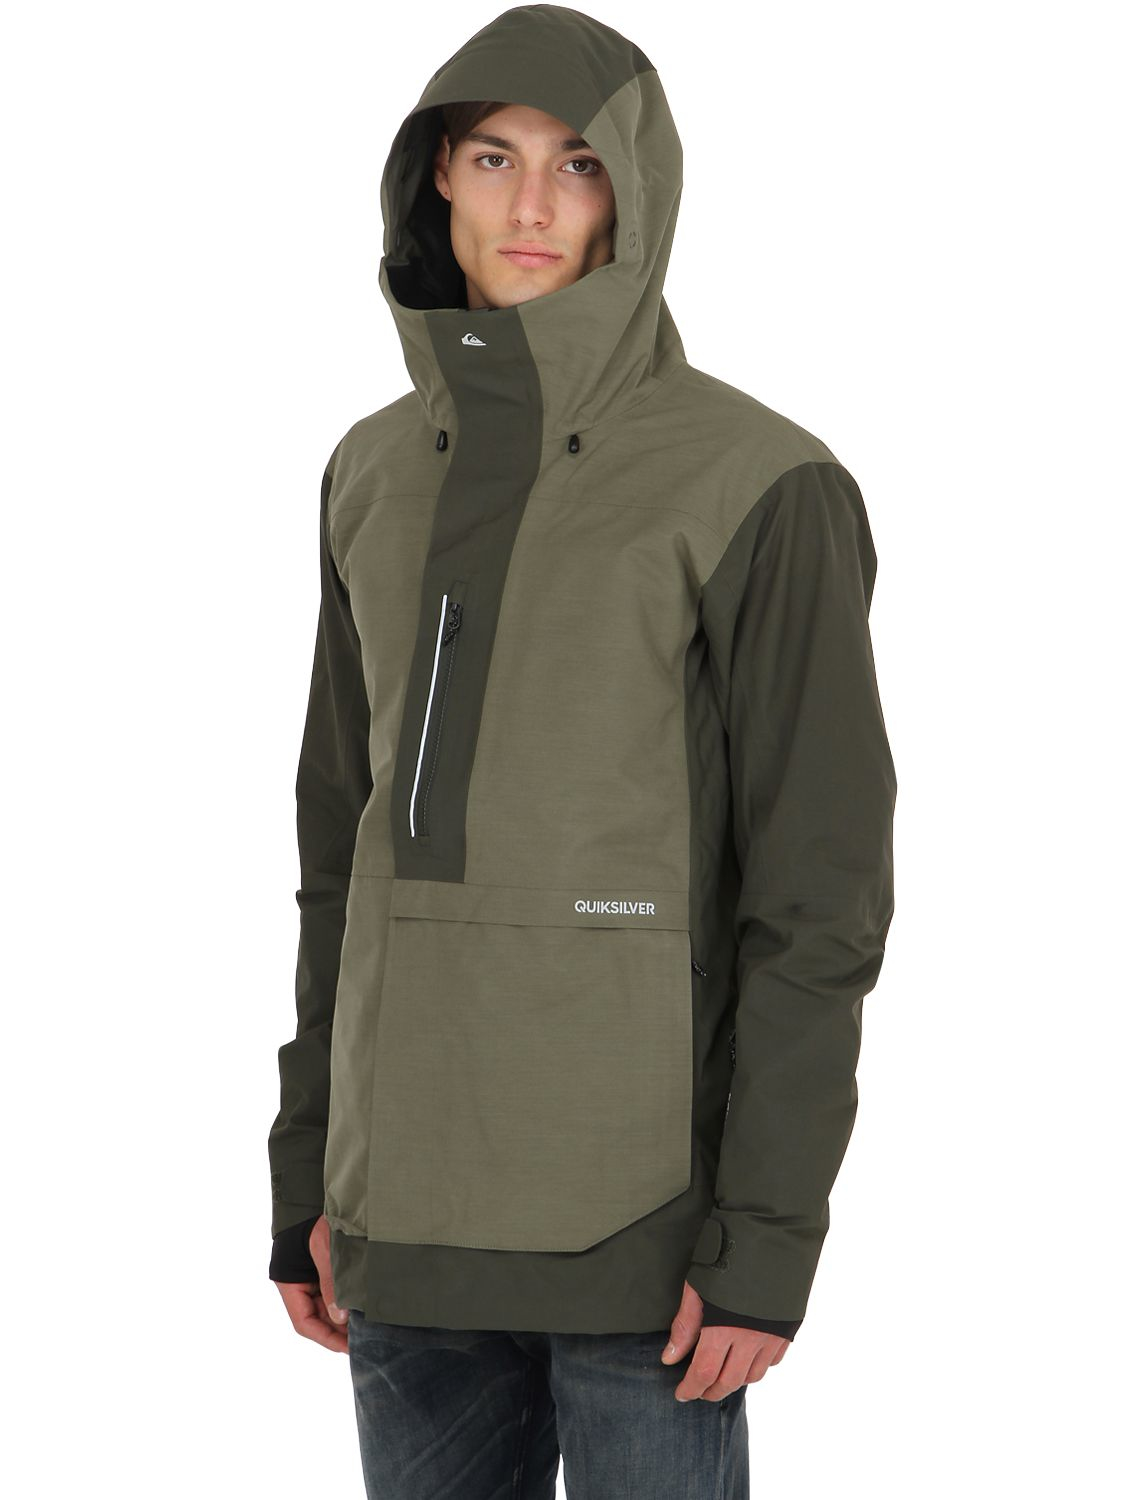 a629d3e292ca Quiksilver Travis Rice Exhibition Gore-tex Jacket in Green for Men ...